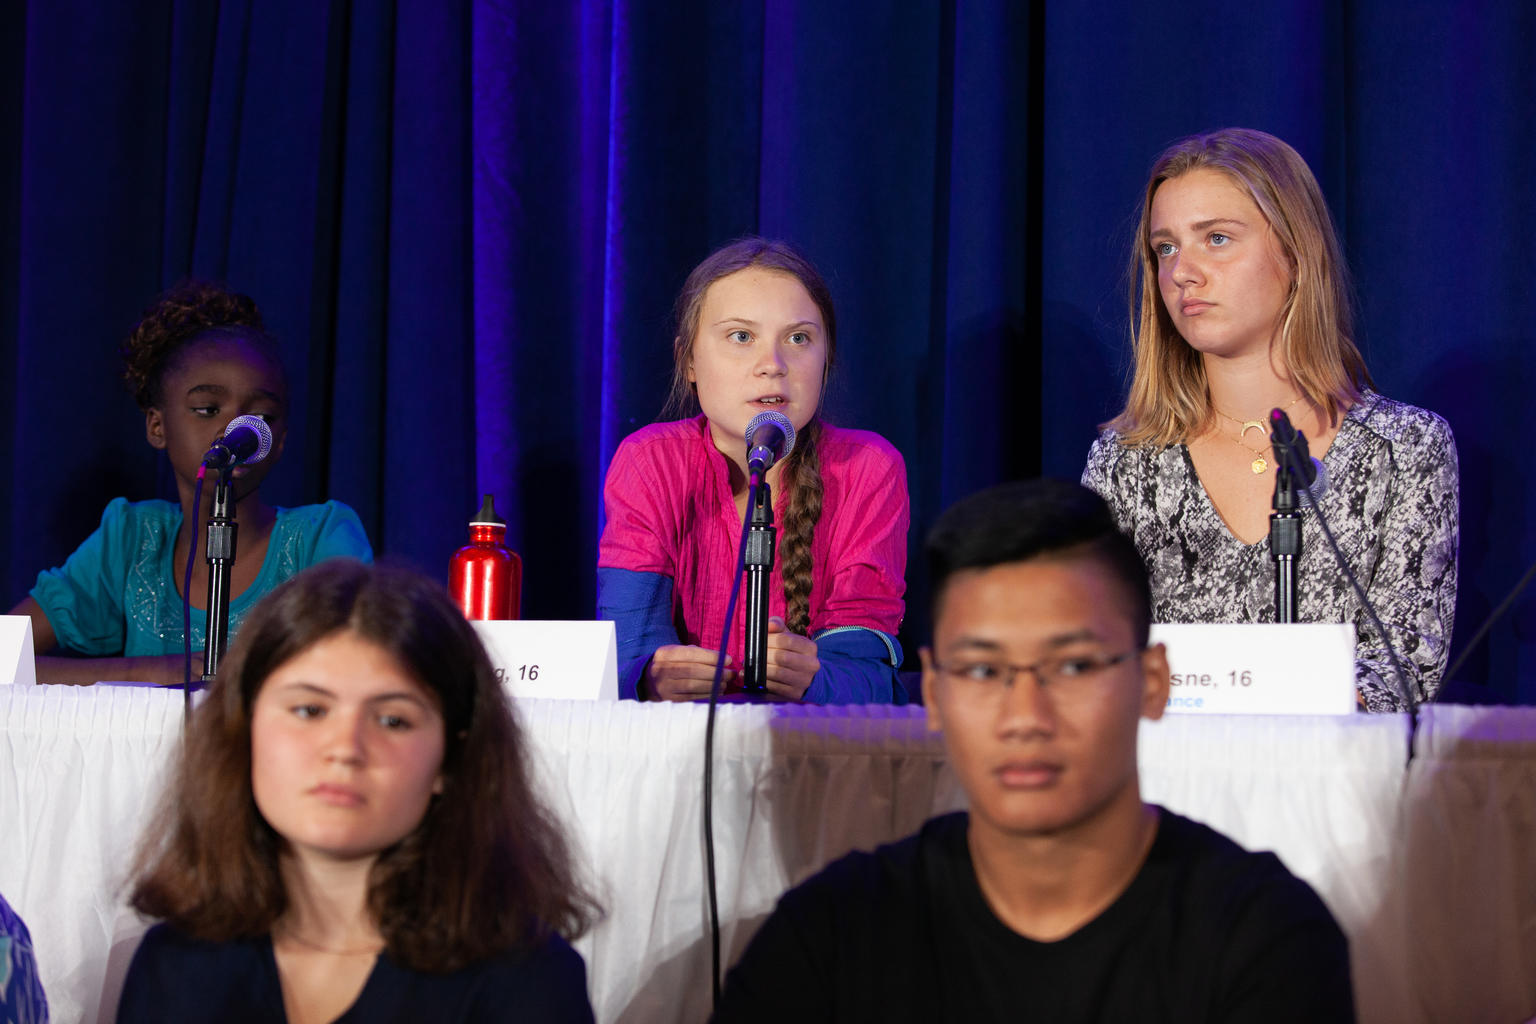 """In September 2019, a 16-year-old Greta Thunberg (center) spoke at UNICEF House in New York at a press conference announcing young people's determination to take collective action to address the impacts of the climate crisis. """"I'm doing this because world"""